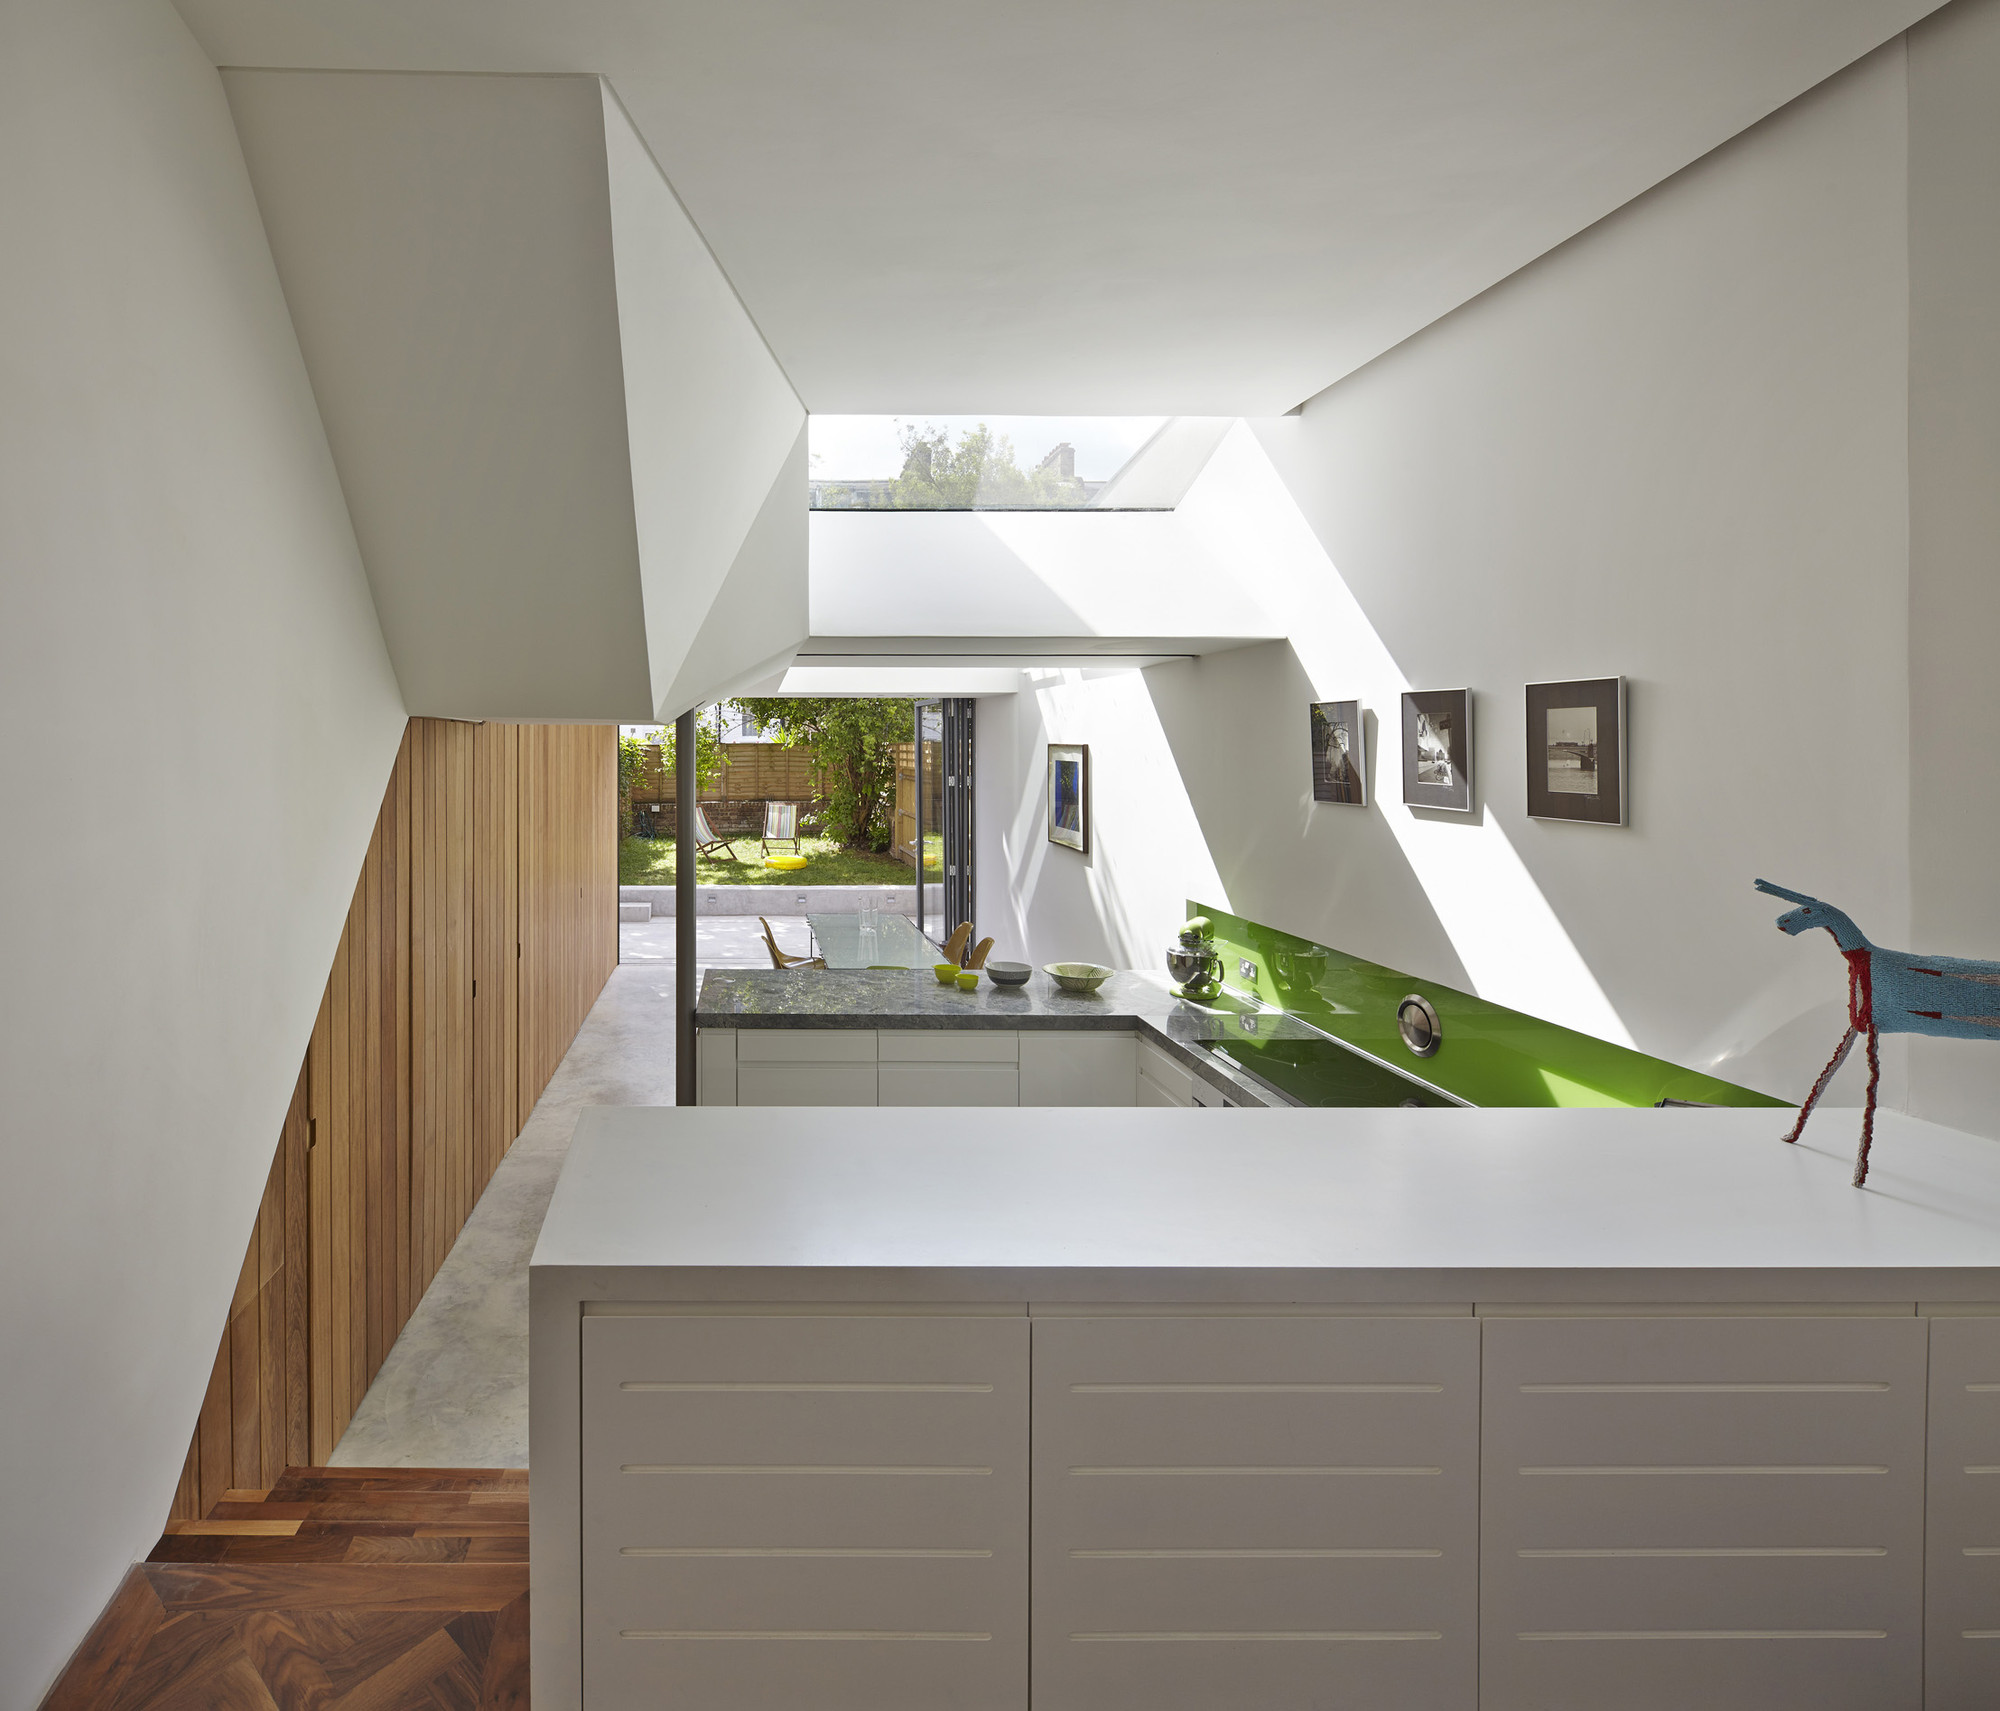 Islington House Neil Dusheiko Architects ArchDaily - Kitchen architects